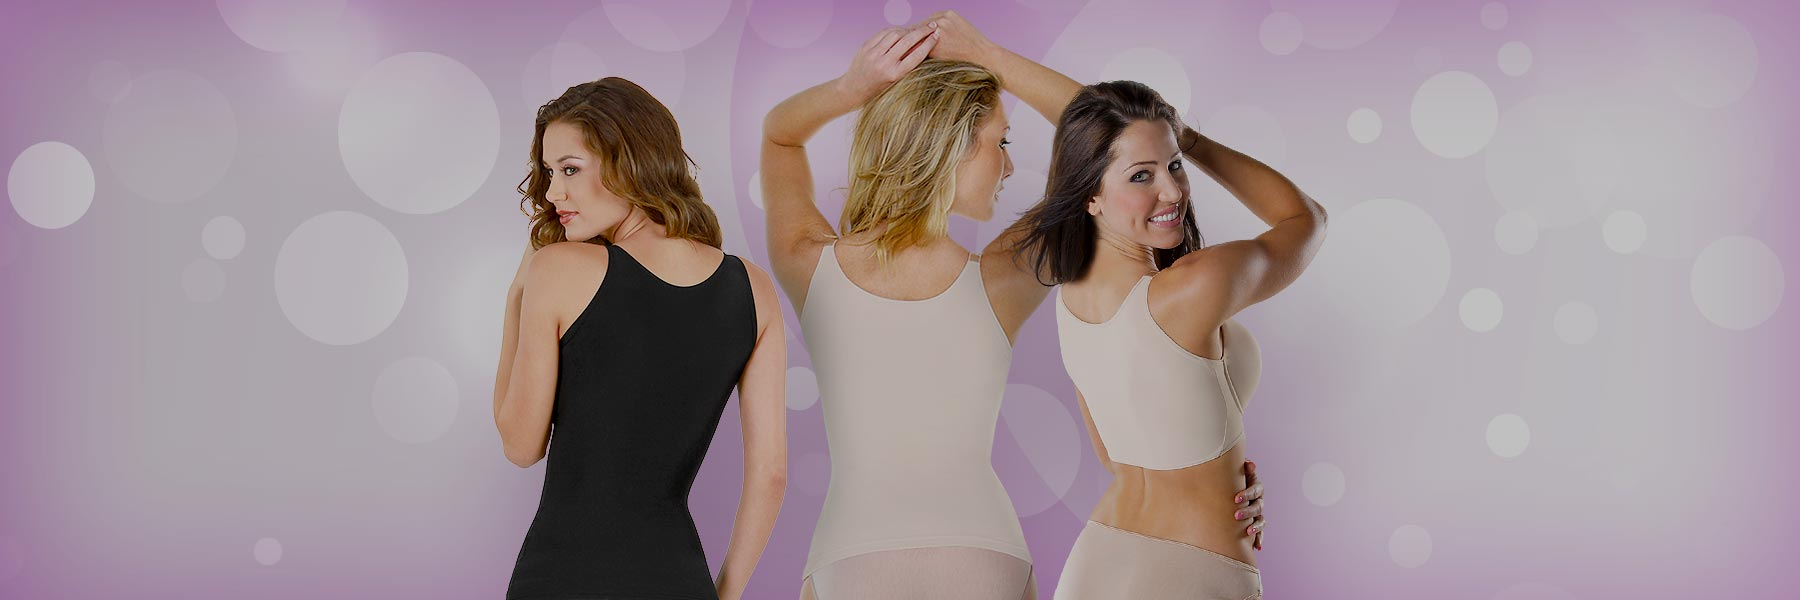 d930a453d8 Shapeez line of Full Coverage Back Smoothing Bras